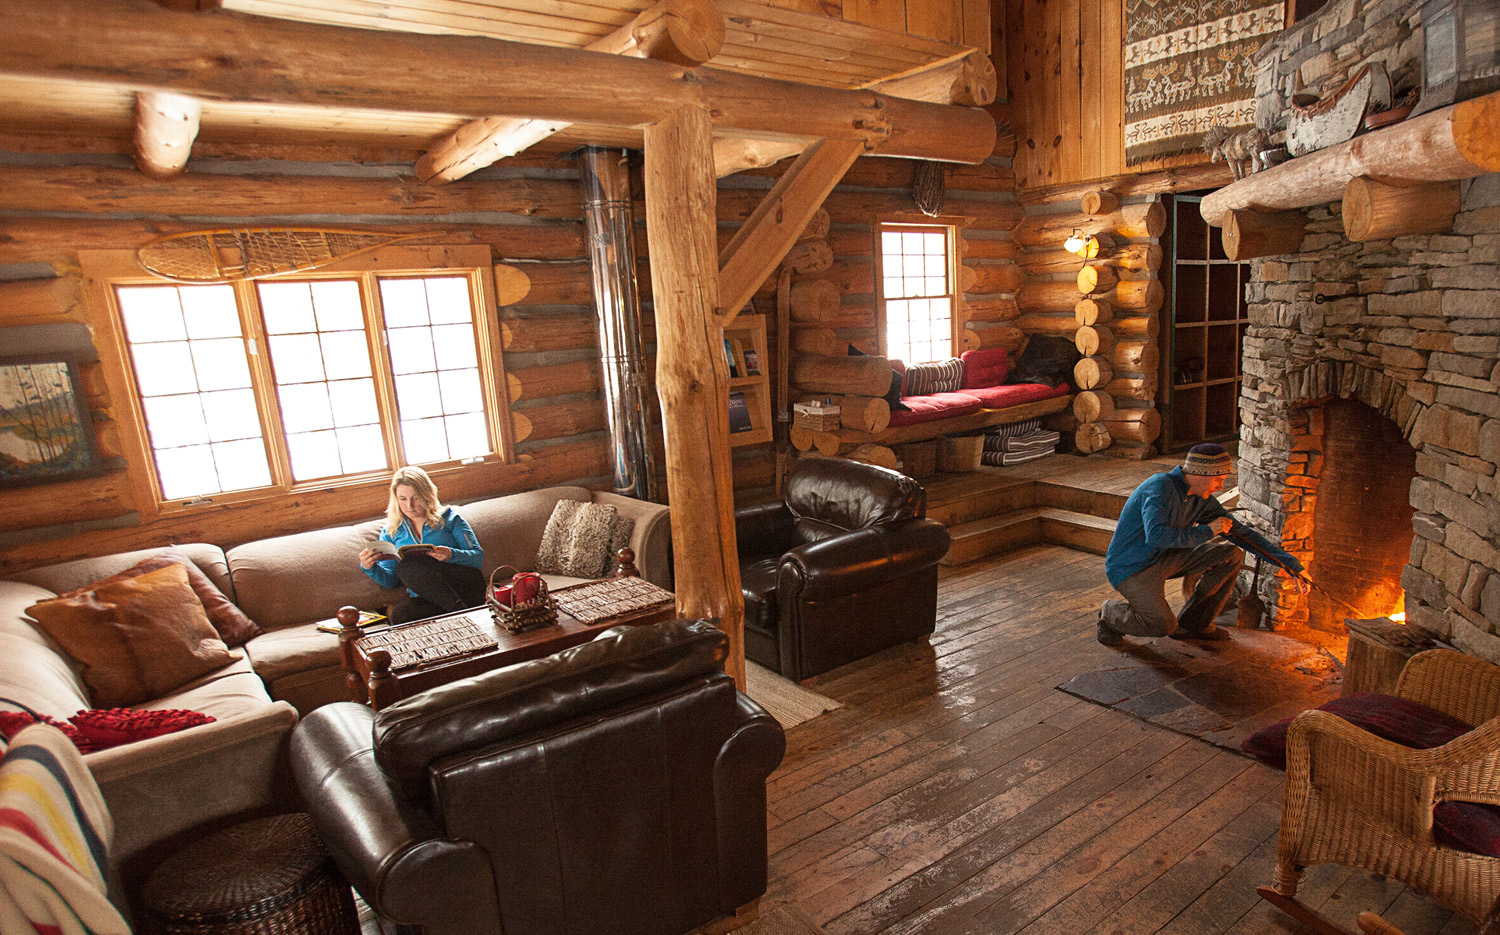 Young couple relaxing in a cozy log cabin